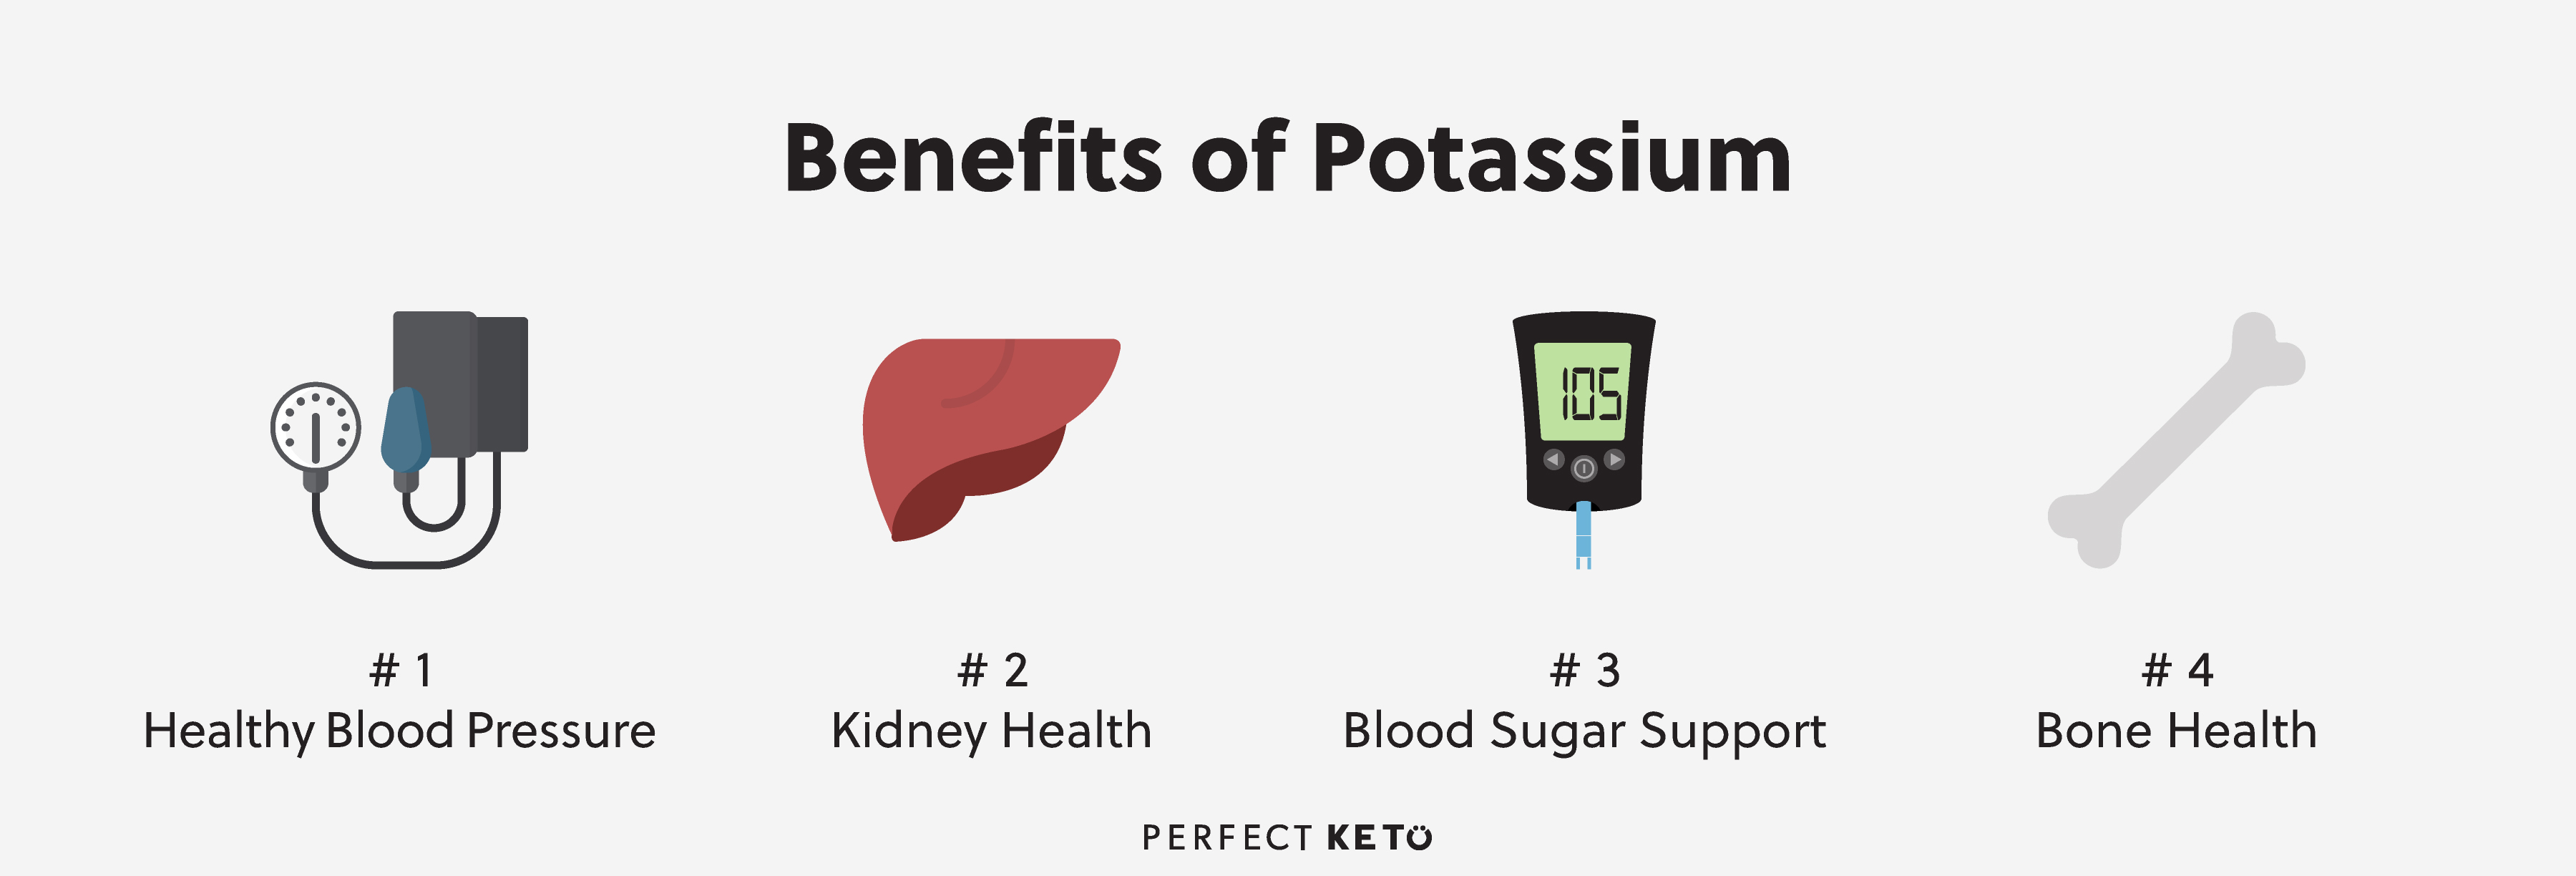 benefits-of-potassium.jpg